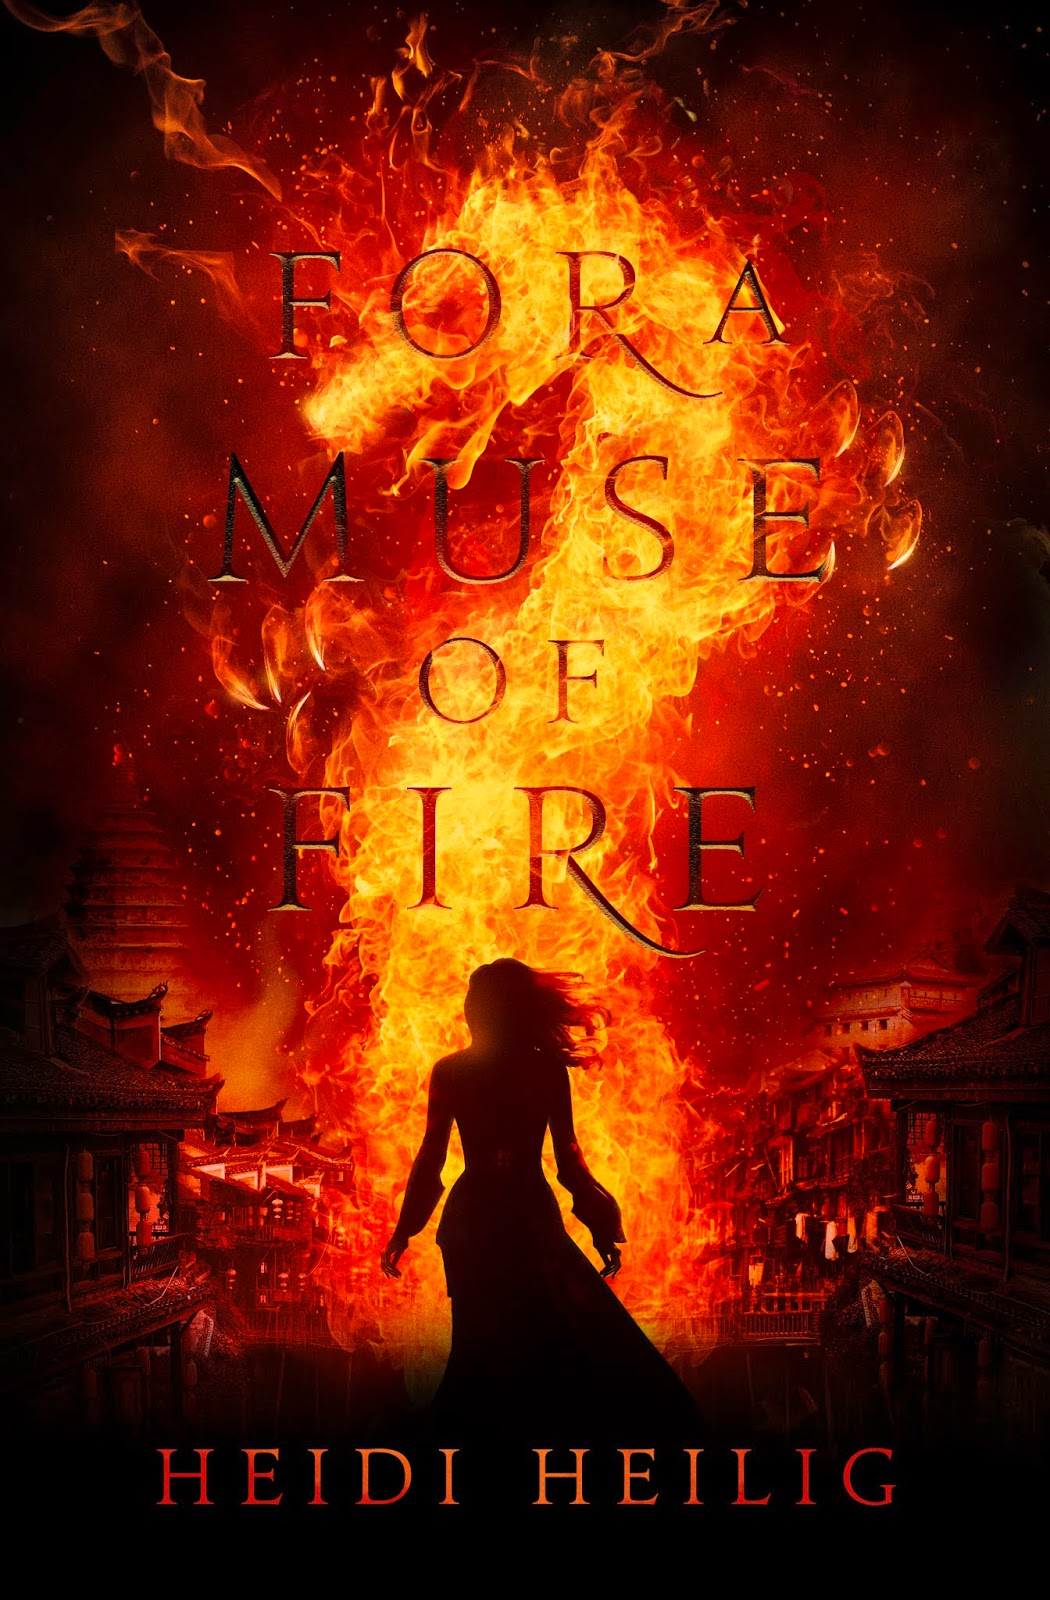 For a Muse of Fire Early Draft 1